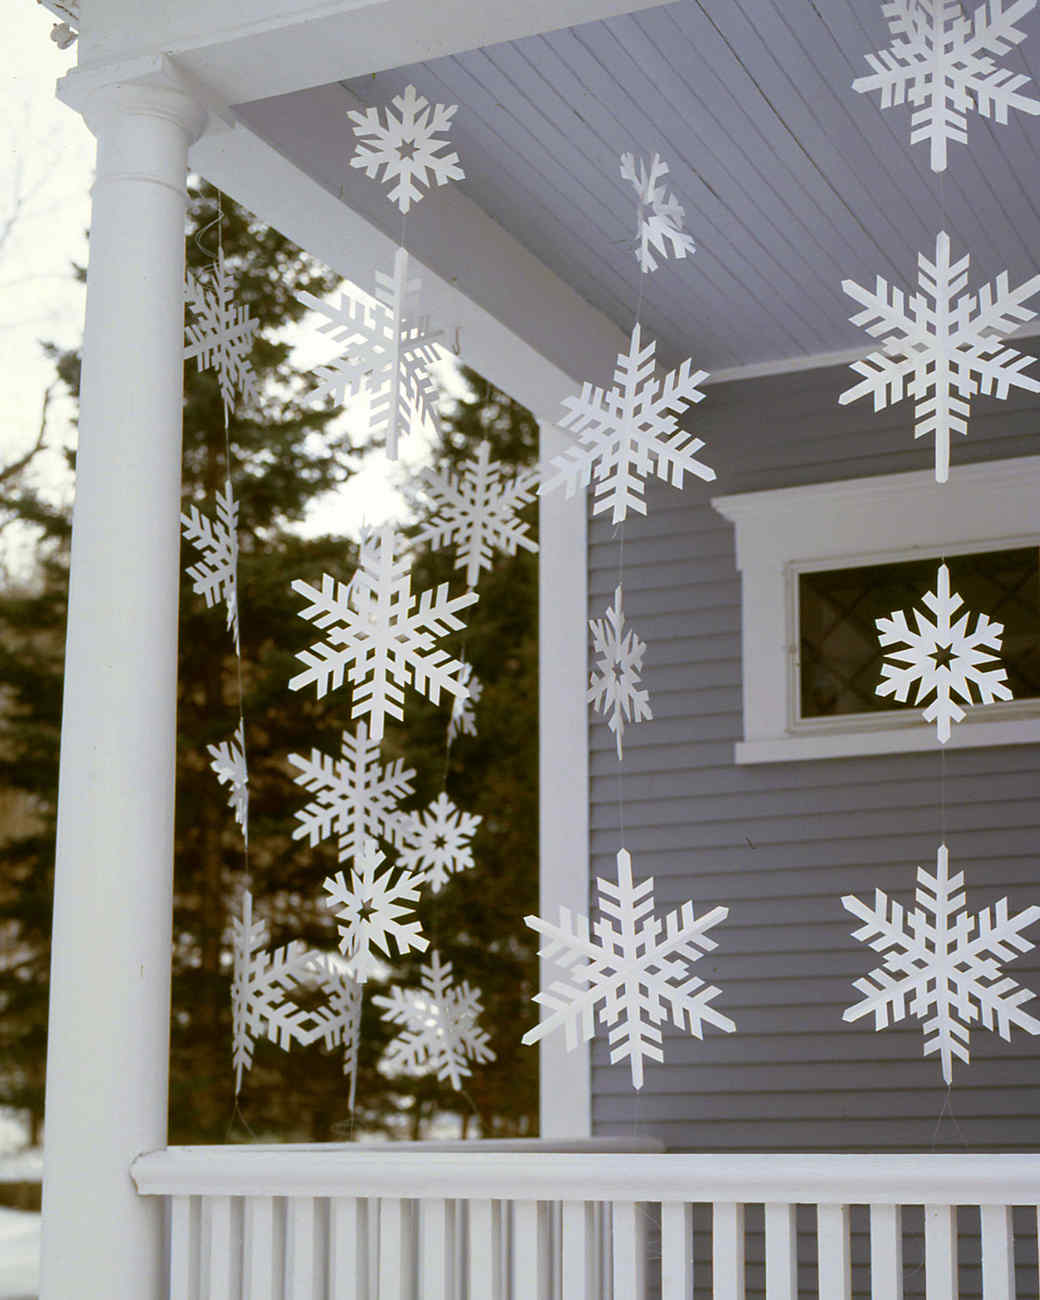 17 snowflake ornaments thatll guarantee a white christmas martha stewart